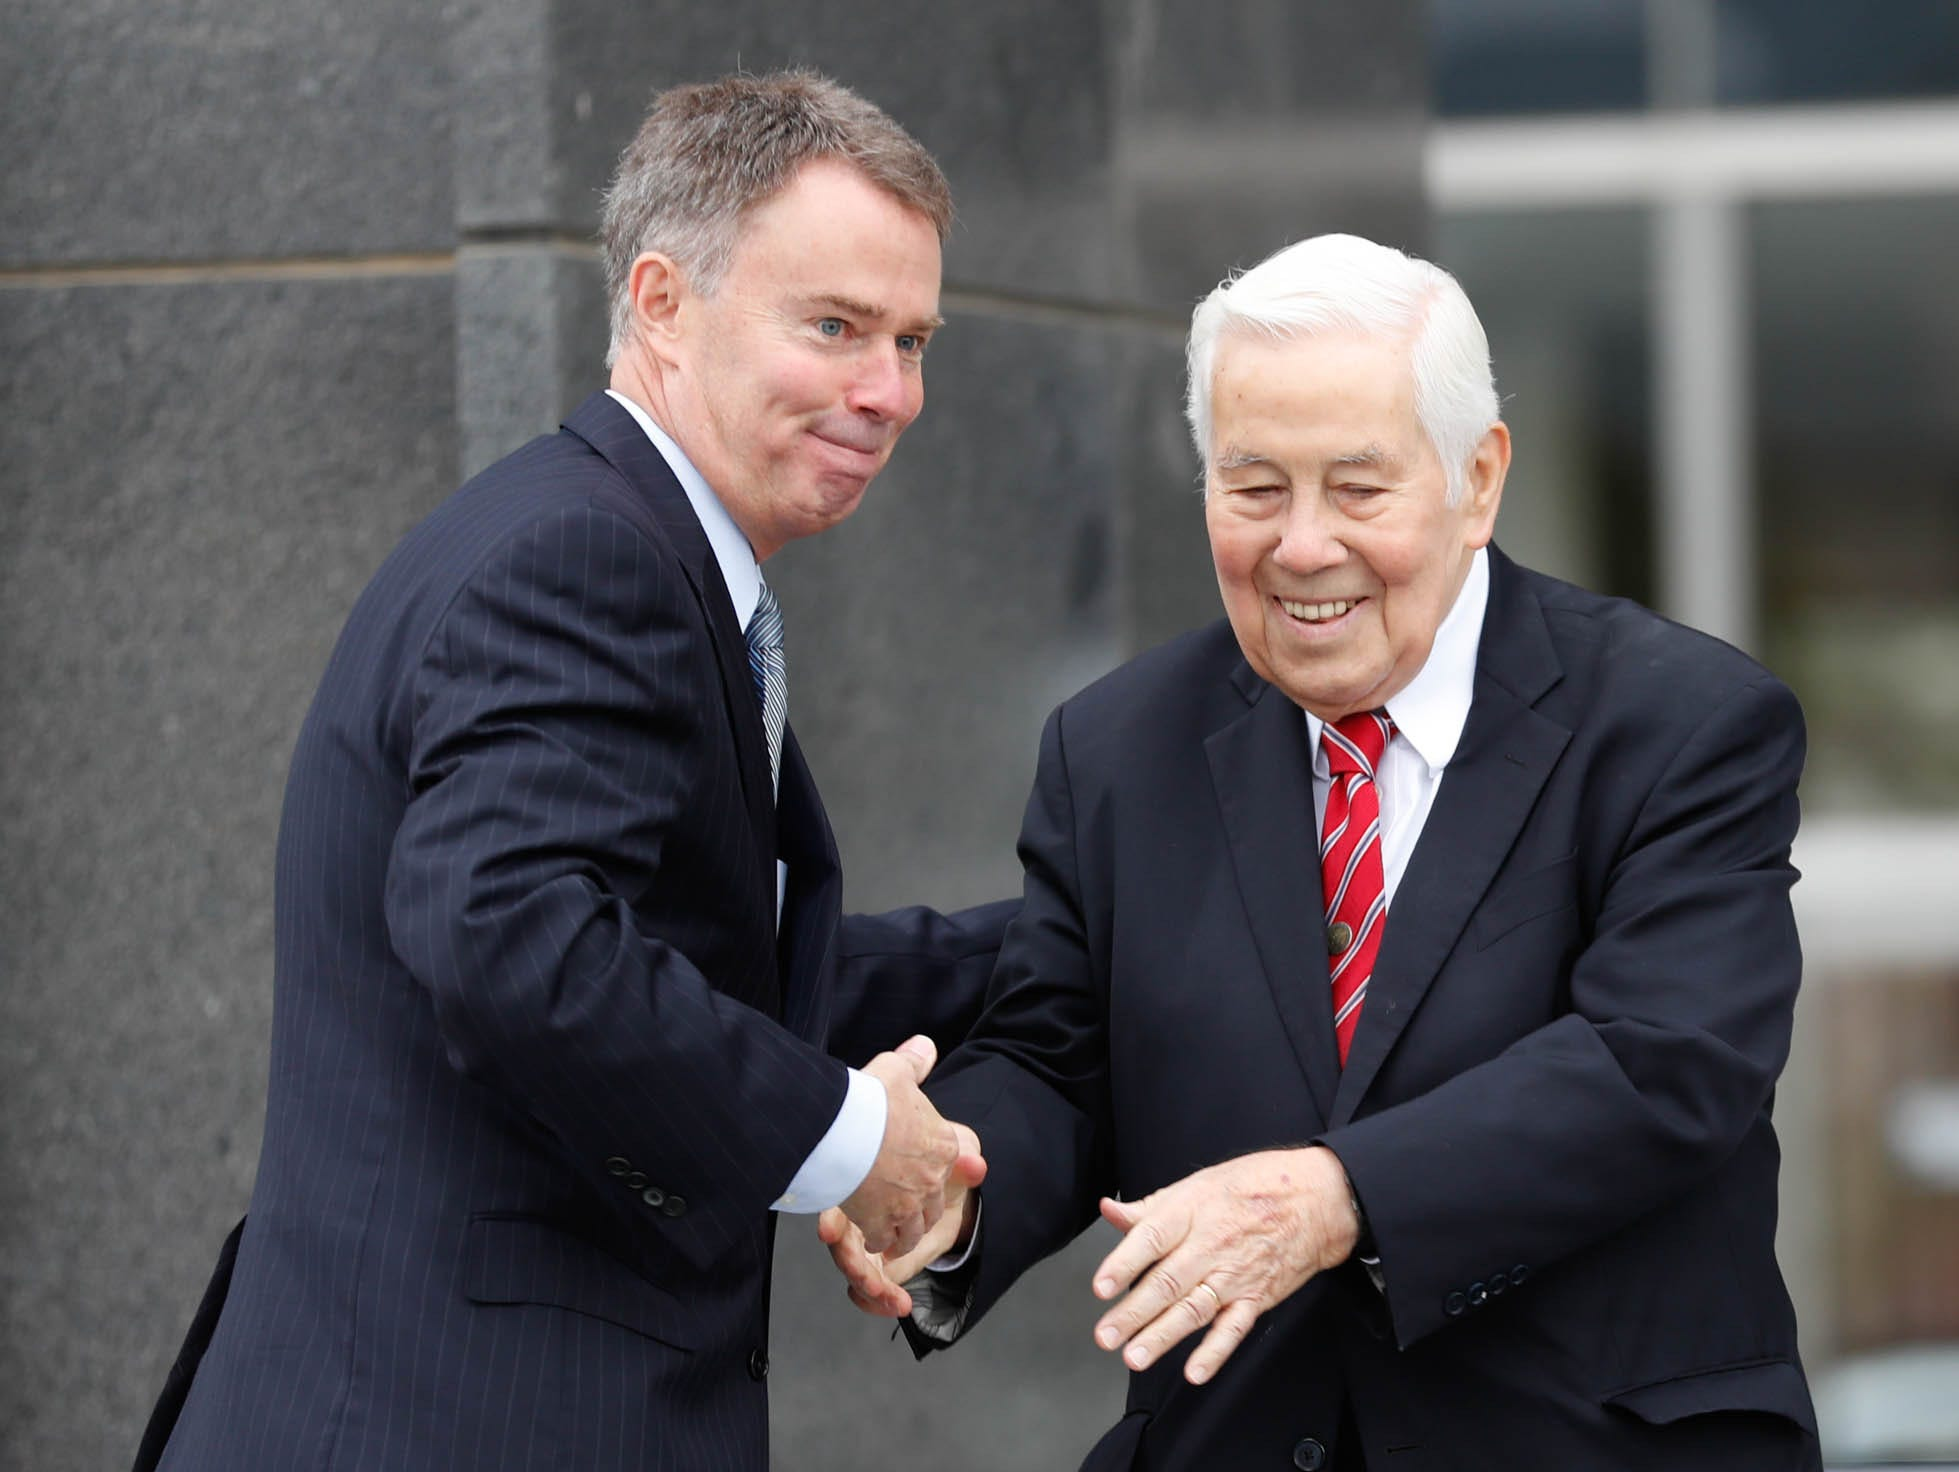 Former Senator and Mayor, Richard Lugar, right, is welcomed to the stage by the current Mayor of Indianapolis, Joe Hogsett, during the reopening and dedication of Richard G. Lugar Plaza at the City-County Building in Indianapolis on Thursday, Oct. 11, 2018.